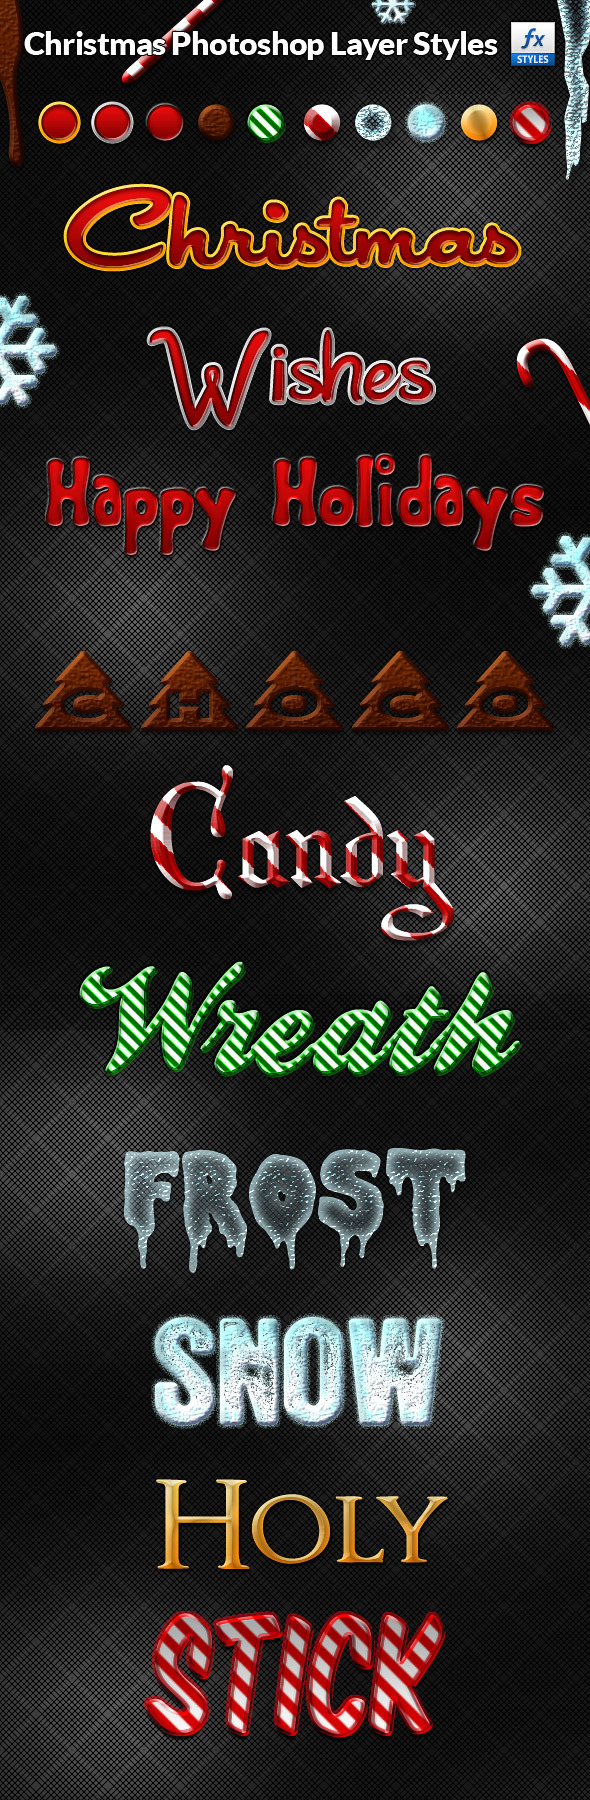 Christmas Photoshop Layer Styles Pack - Text Effects Styles